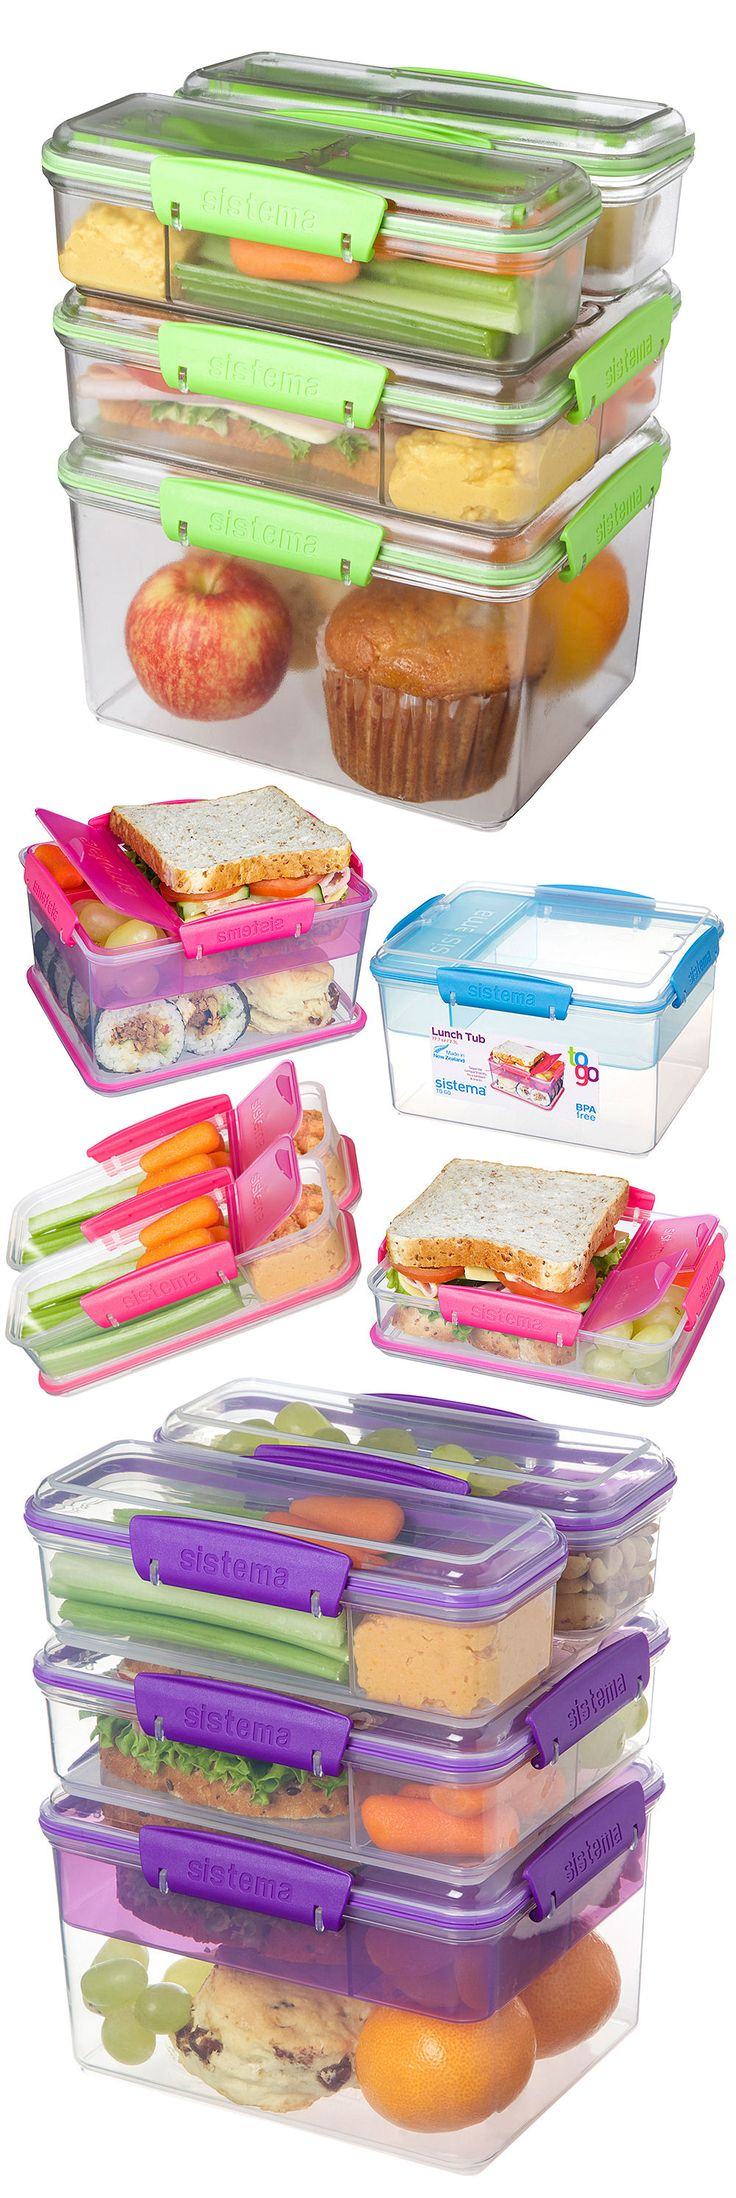 Lunch Box 2 Go Stacking Container Set ❤︎ Separate Compartments to keep food fresh & from getting soggy